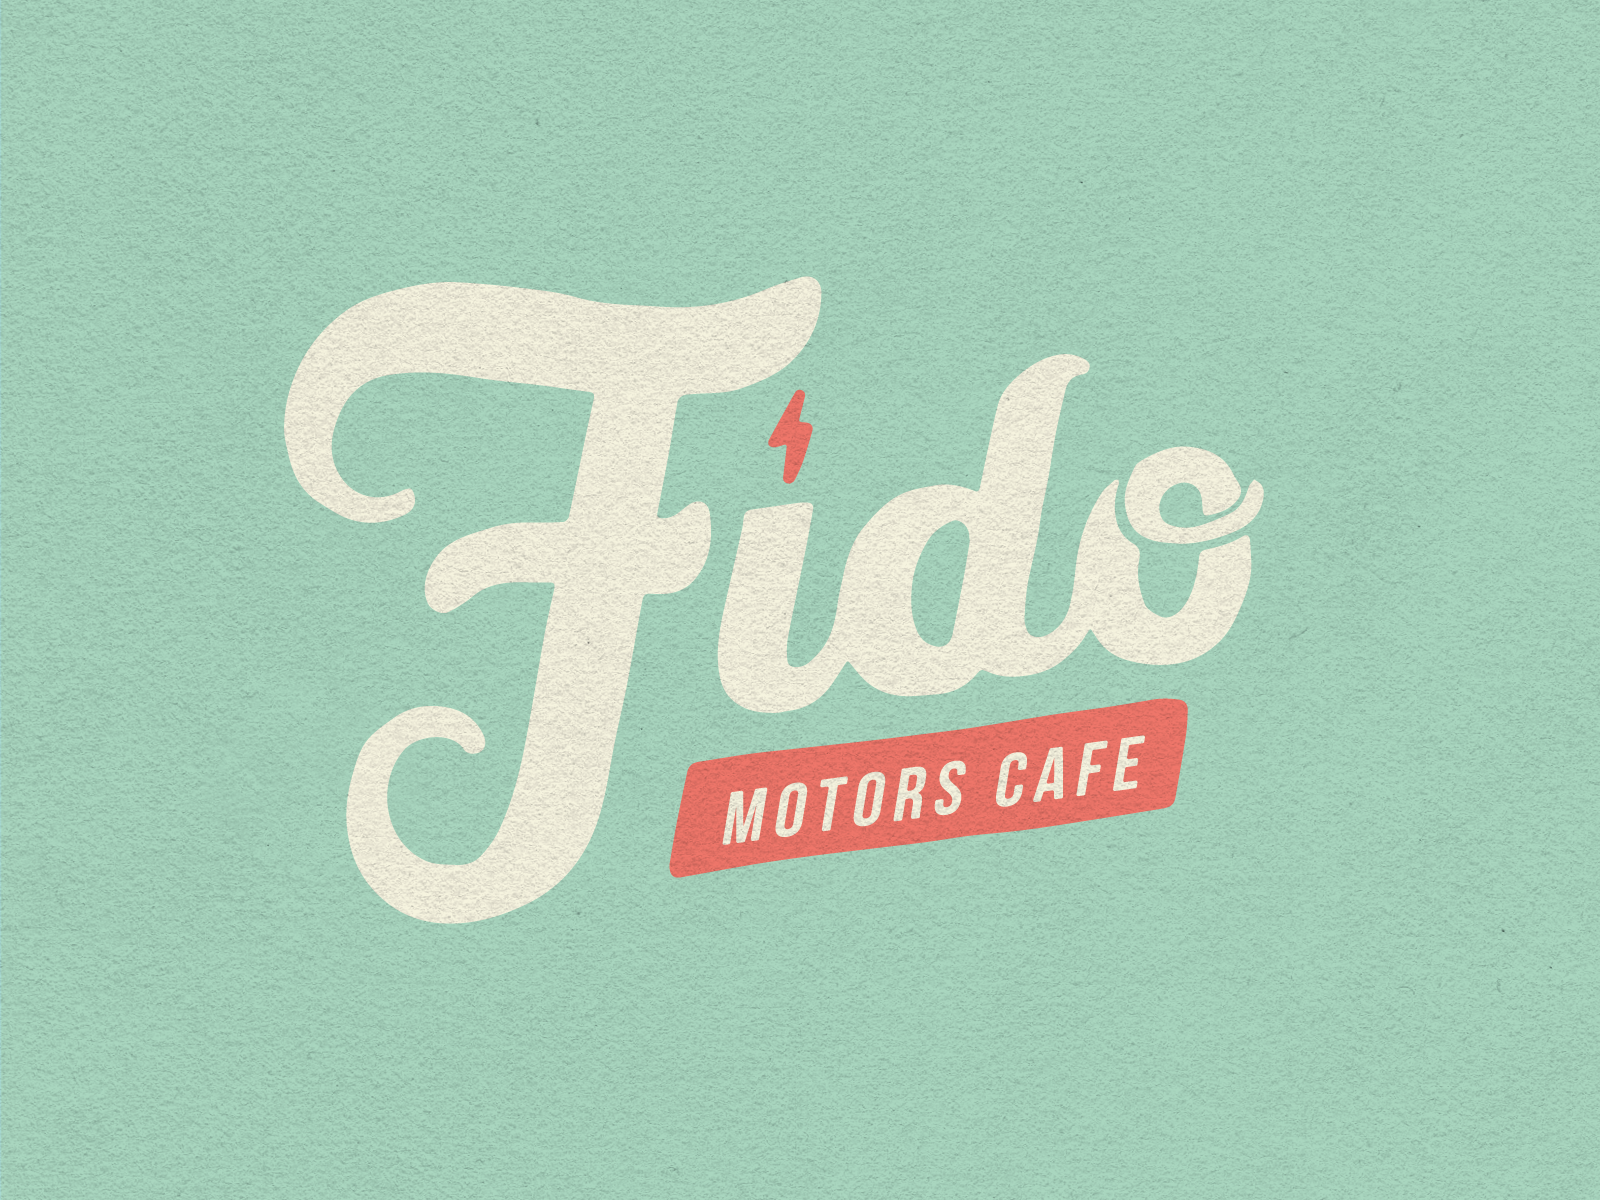 SBS_FIDO_18_CAFE.png